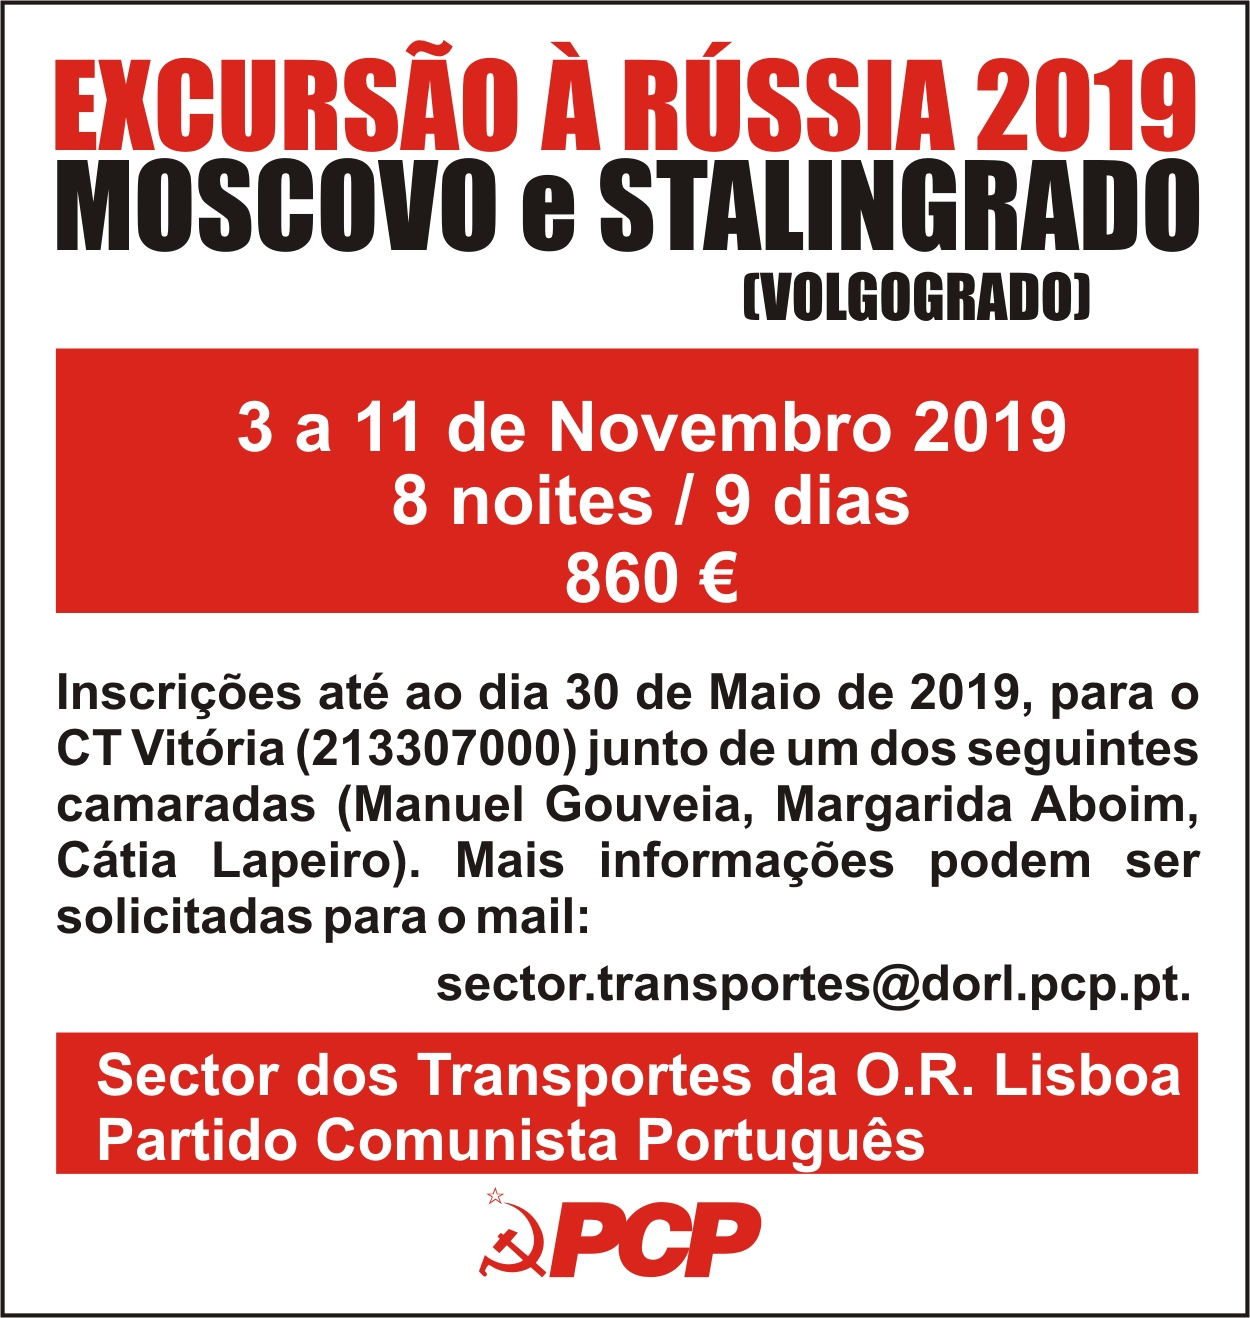 cartazete excursao 2019